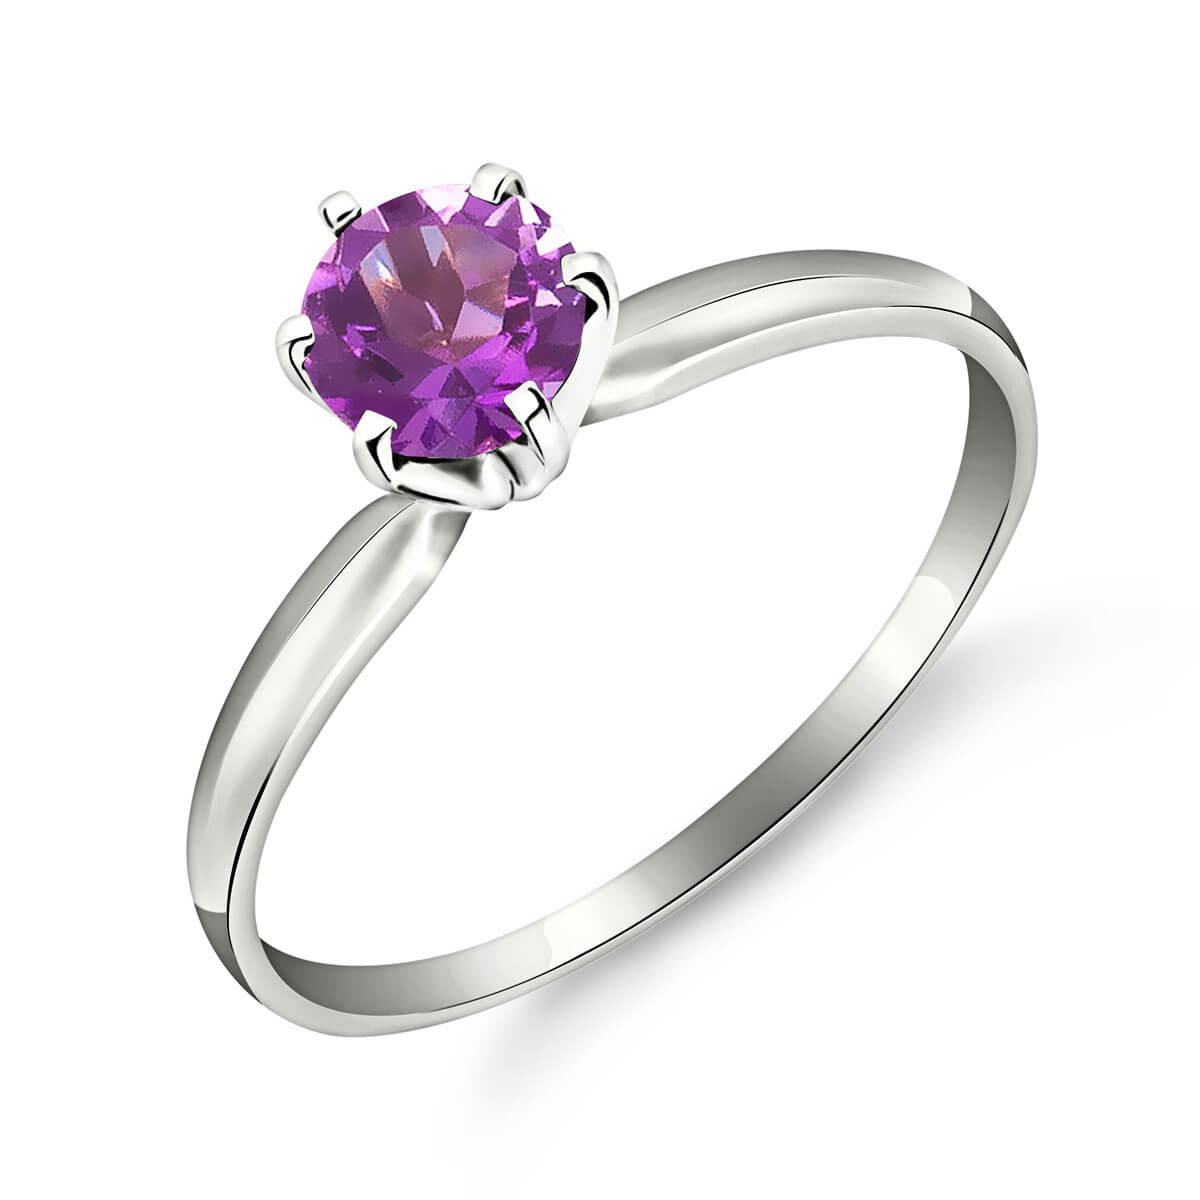 Amethyst Crown Solitaire Ring 0.65 ct in 9ct White Gold